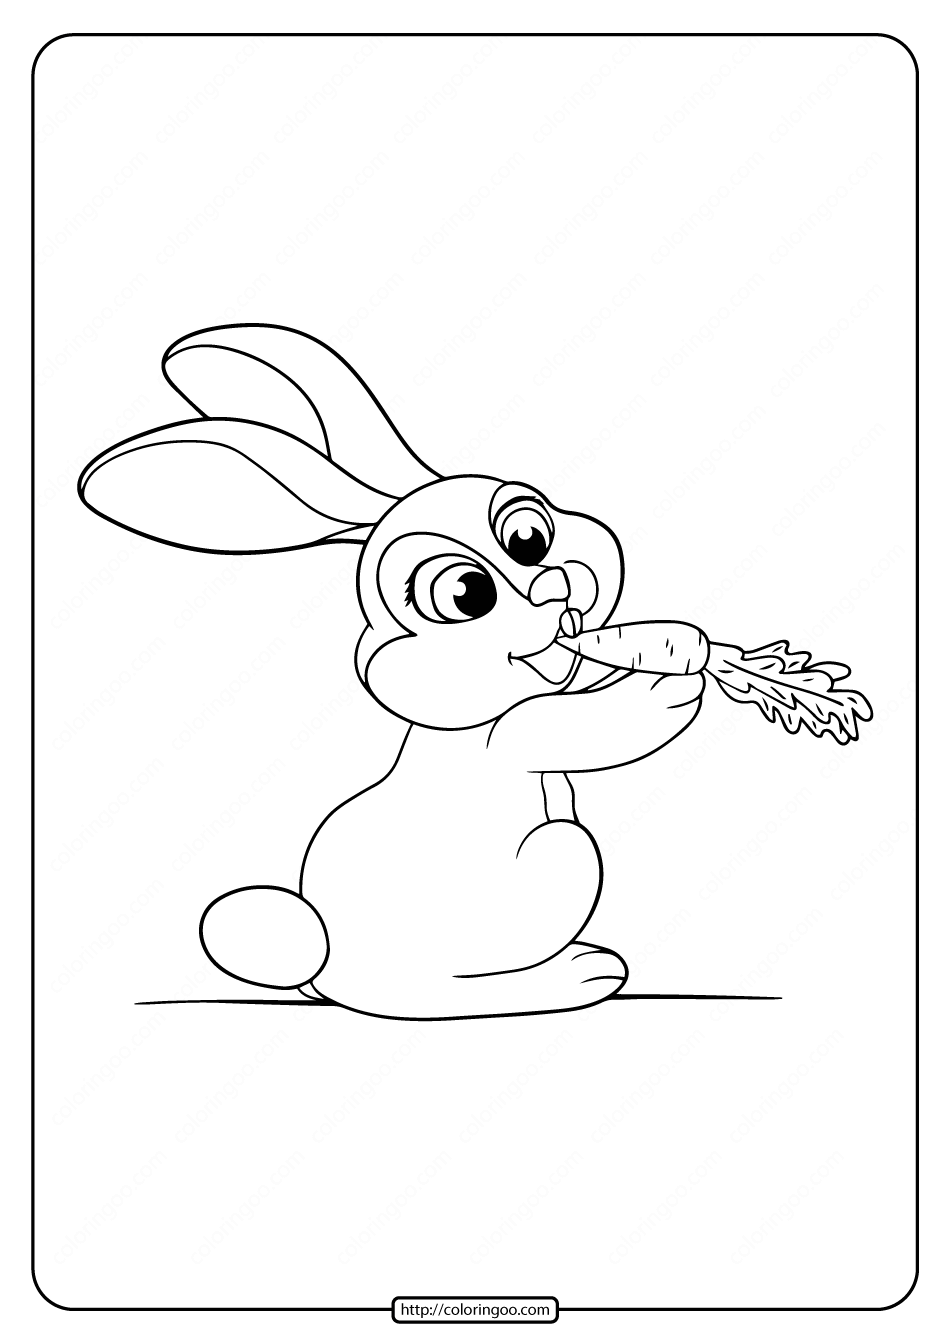 Printable Cute Rabbit Eat Carrot Coloring Page